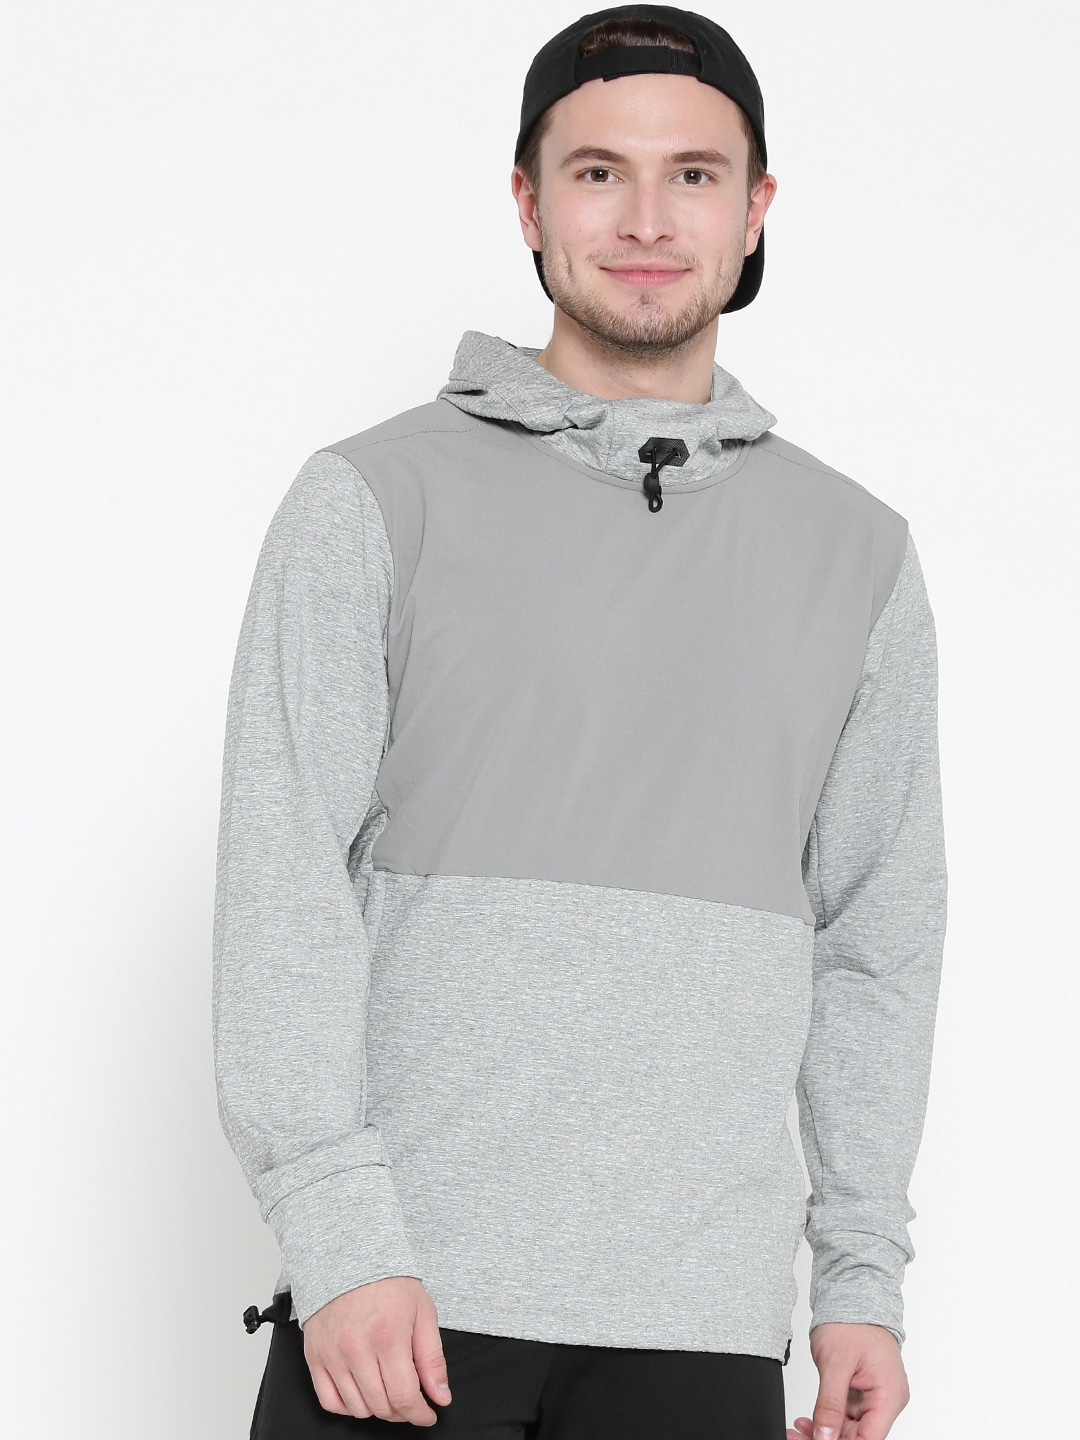 Buy Adidas Workout OTH Grey Melange Solid Hooded Men's Sweatshirt At Best Price